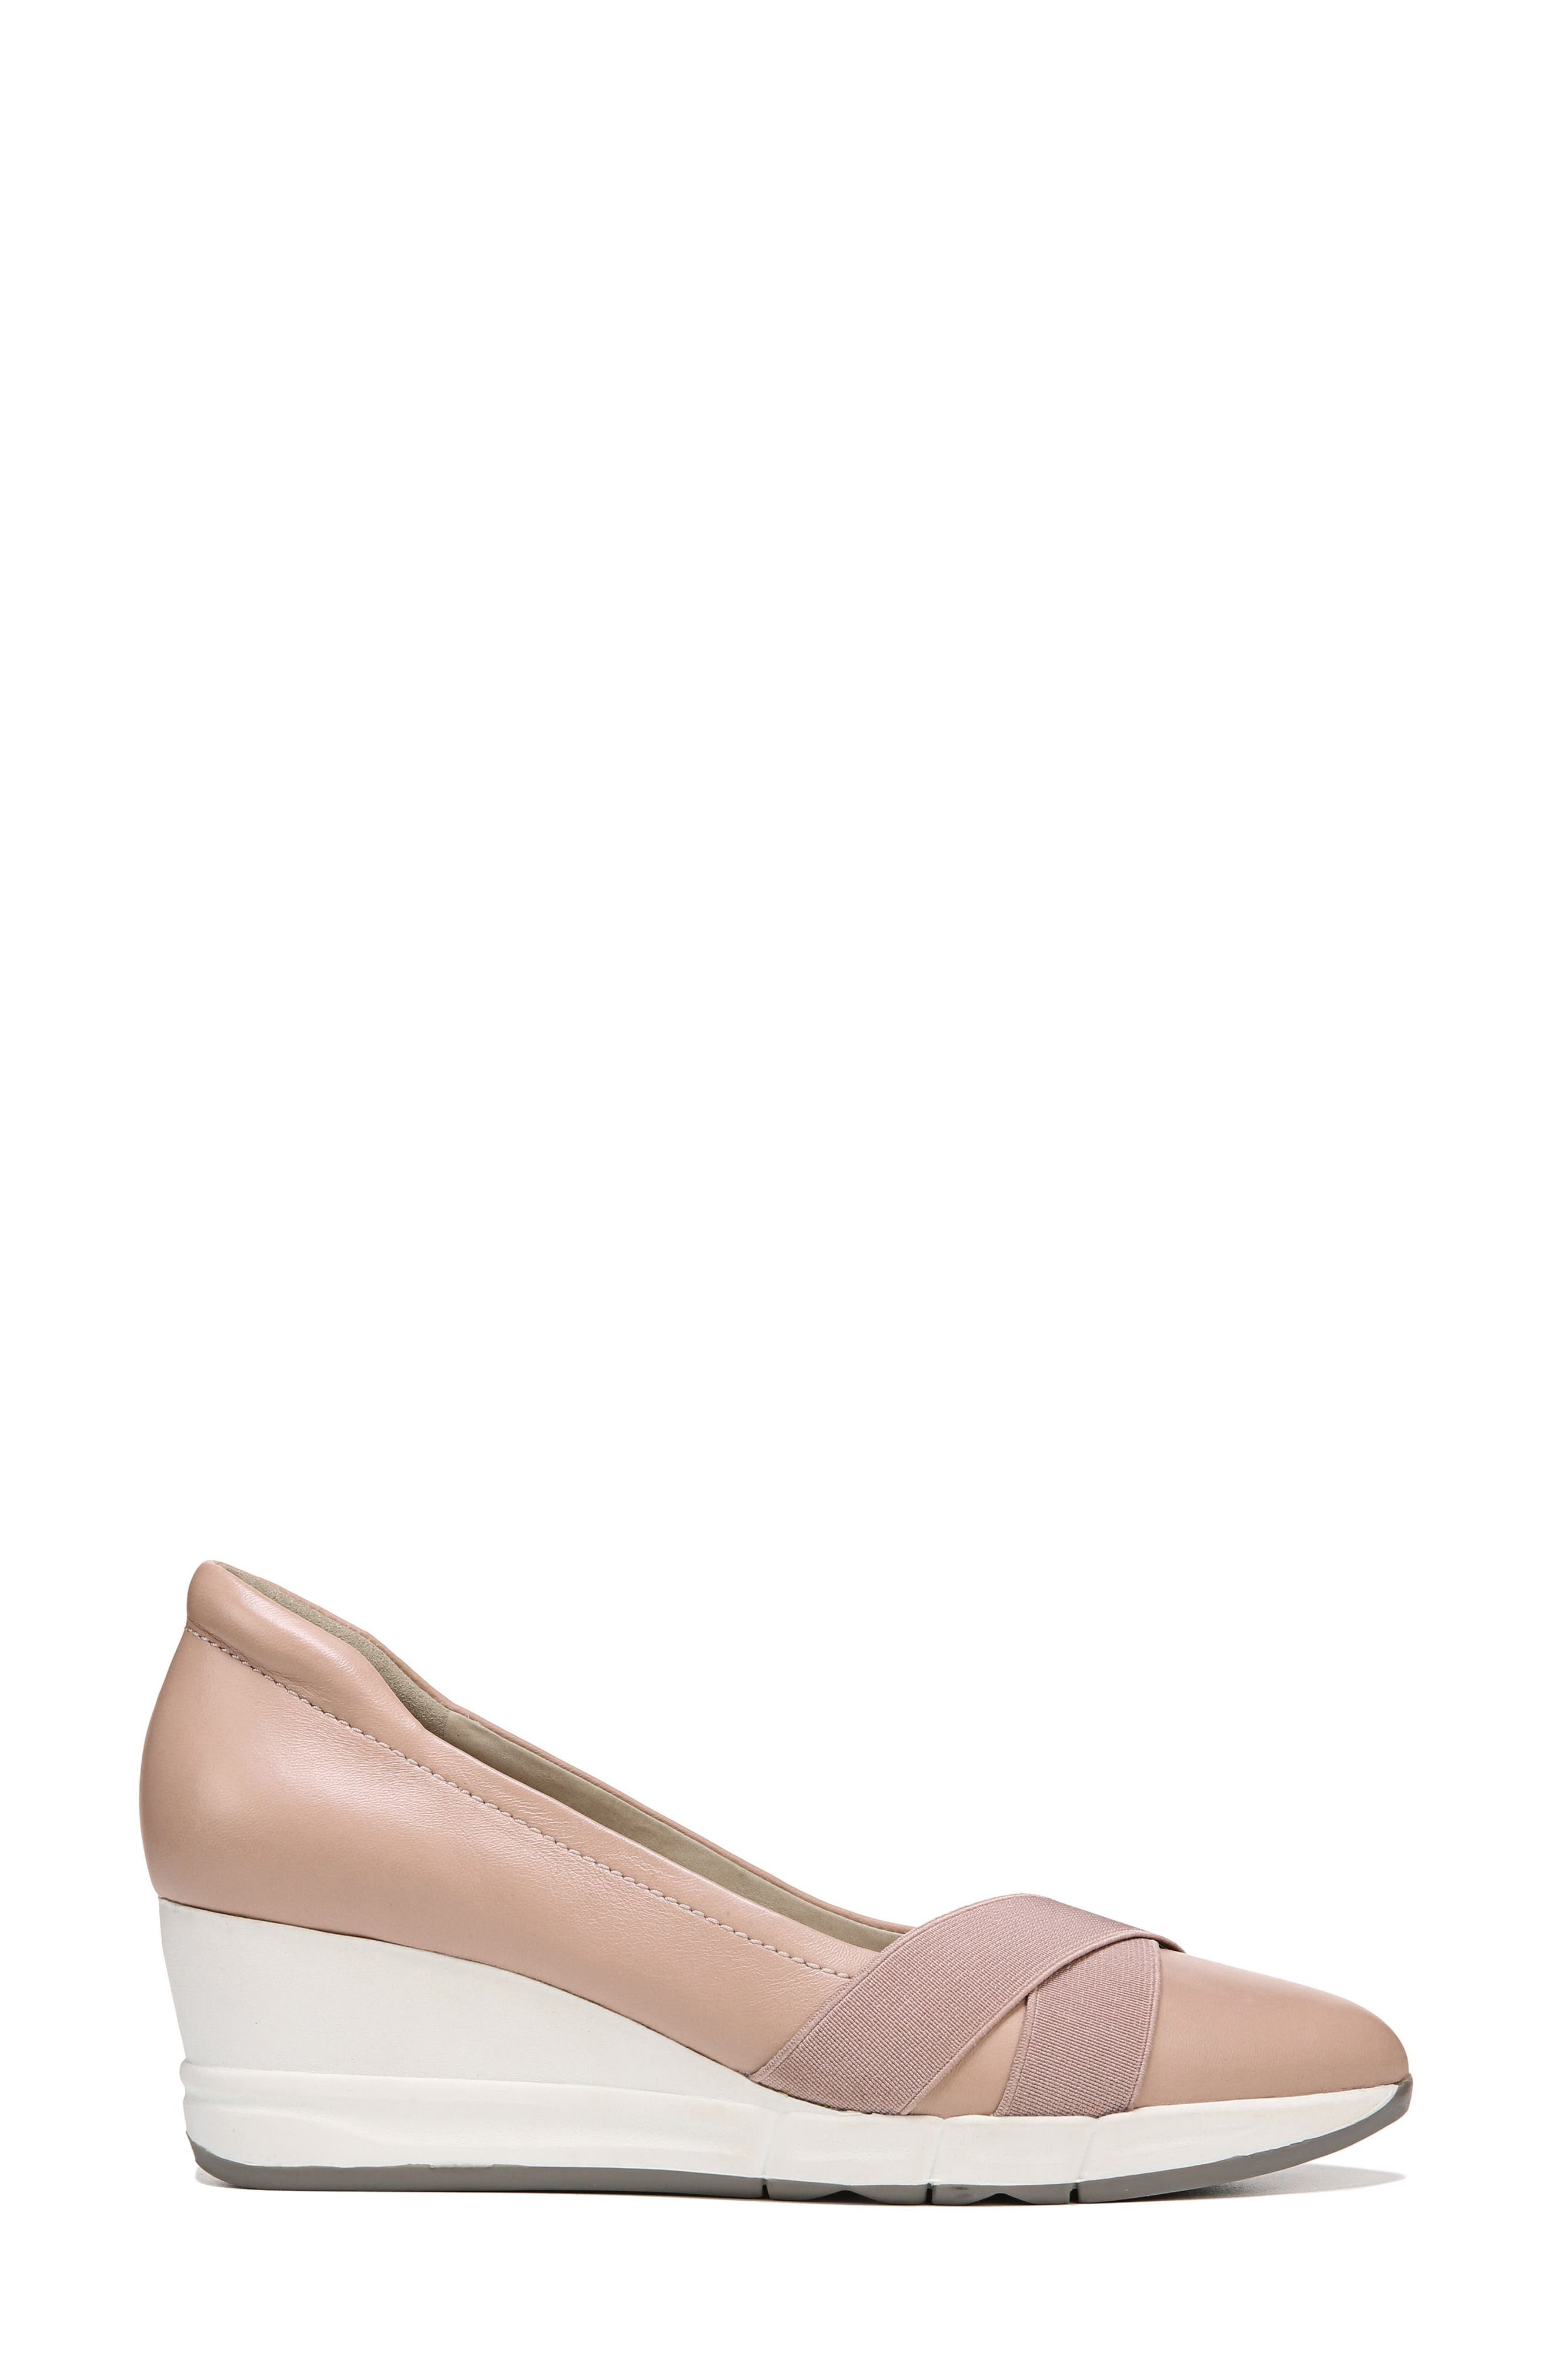 Harlyn Wedge Pump,                             Alternate thumbnail 3, color,                             Mauve Leather